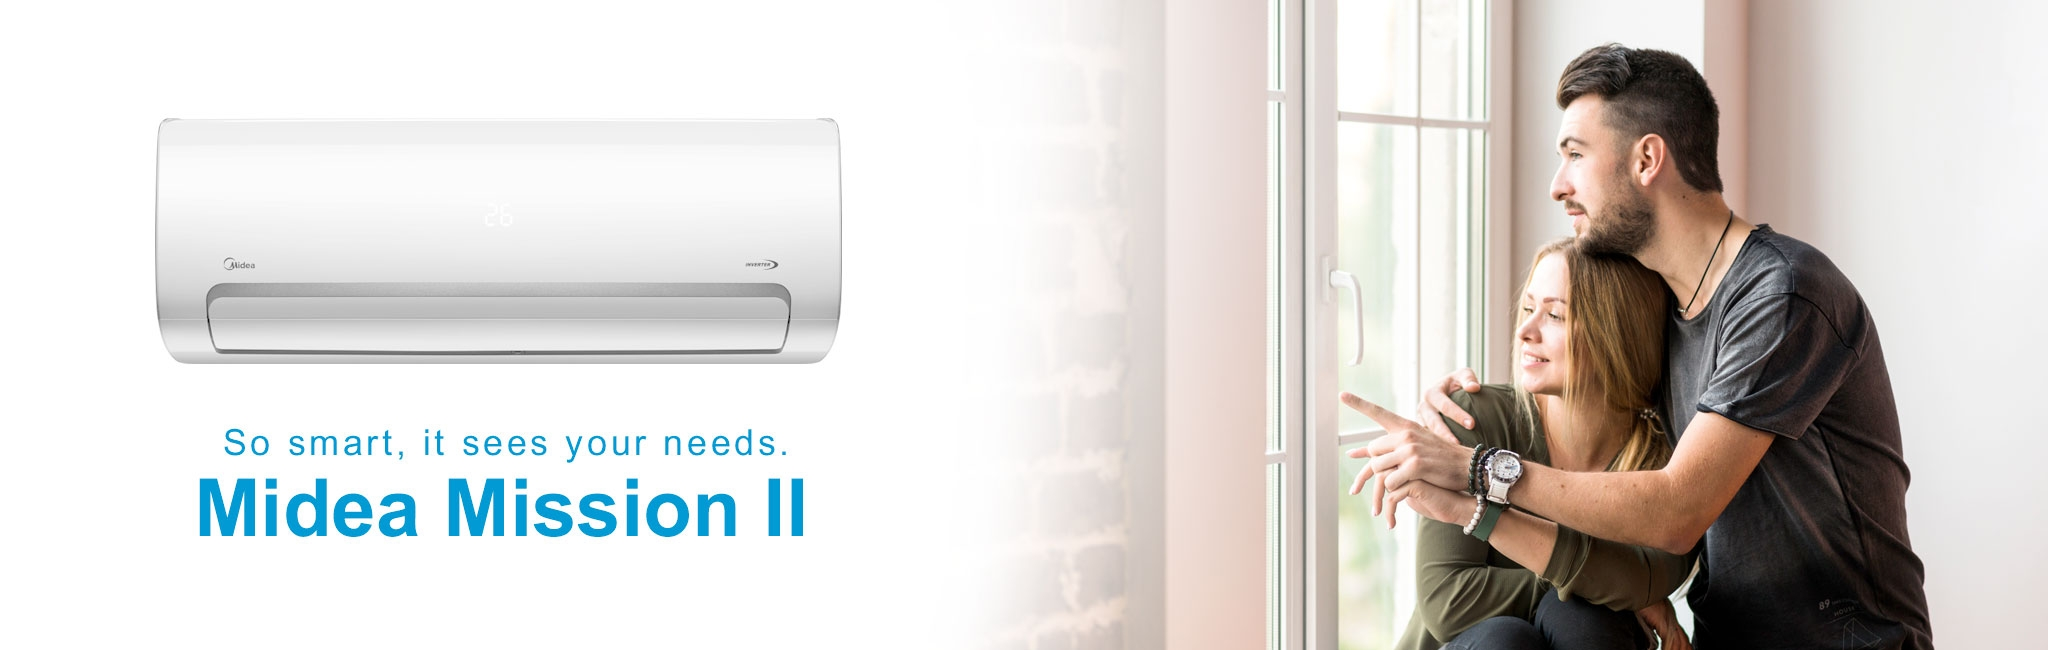 See the Midea MB-12N8D6-I Mission II Inverter Air Conditioner from MIDEA.BG